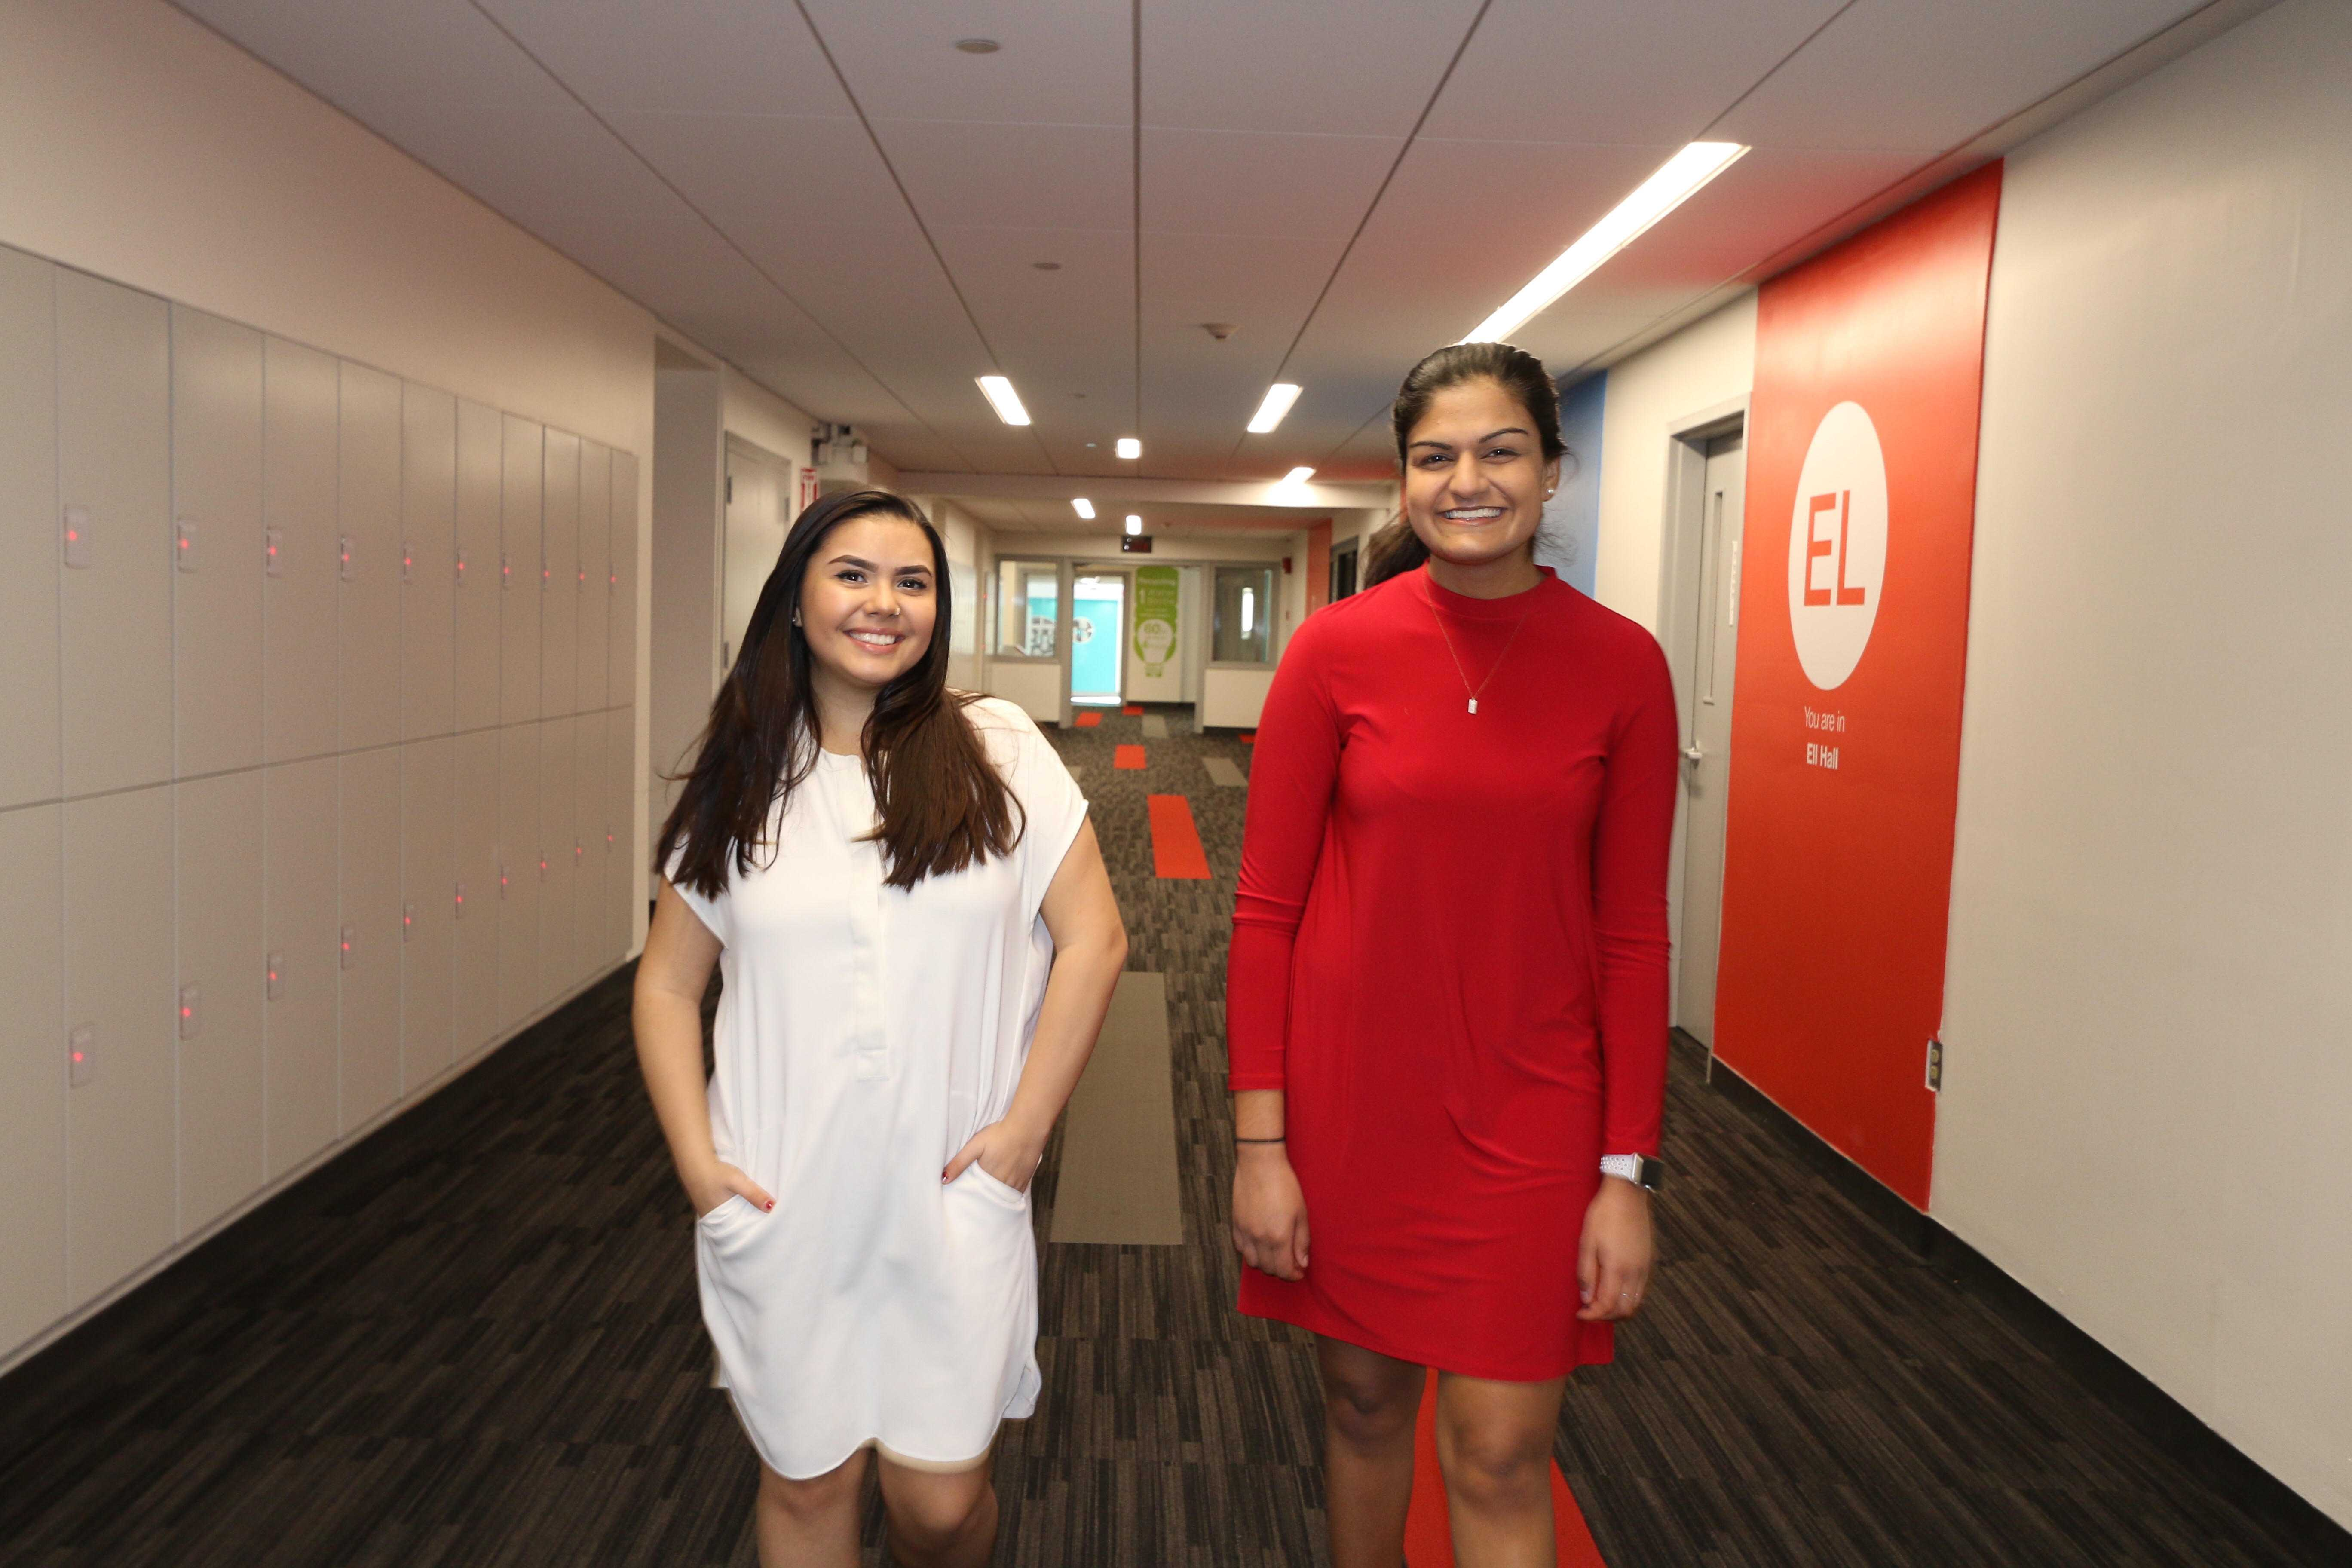 Suchira Sharma (left) currently serves as the SGA executive vice president and Paulina Ruiz is the vice president of student affairs. They will assume their new positions in May./Photo courtesy Suchira + Paulina: